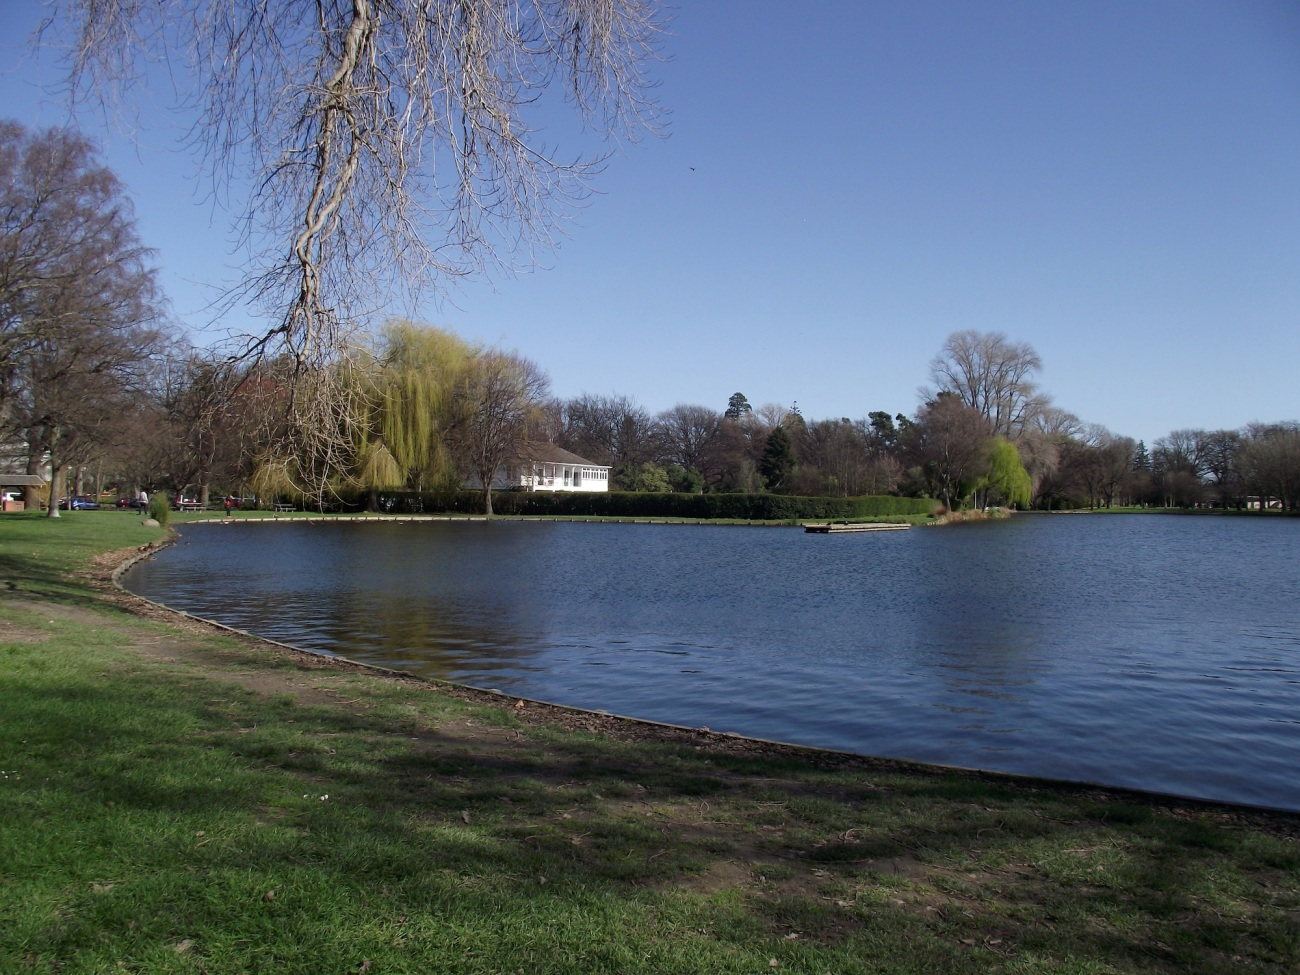 Victoria Lake, Hagley Park in August 2013 © Lemuel Lyes